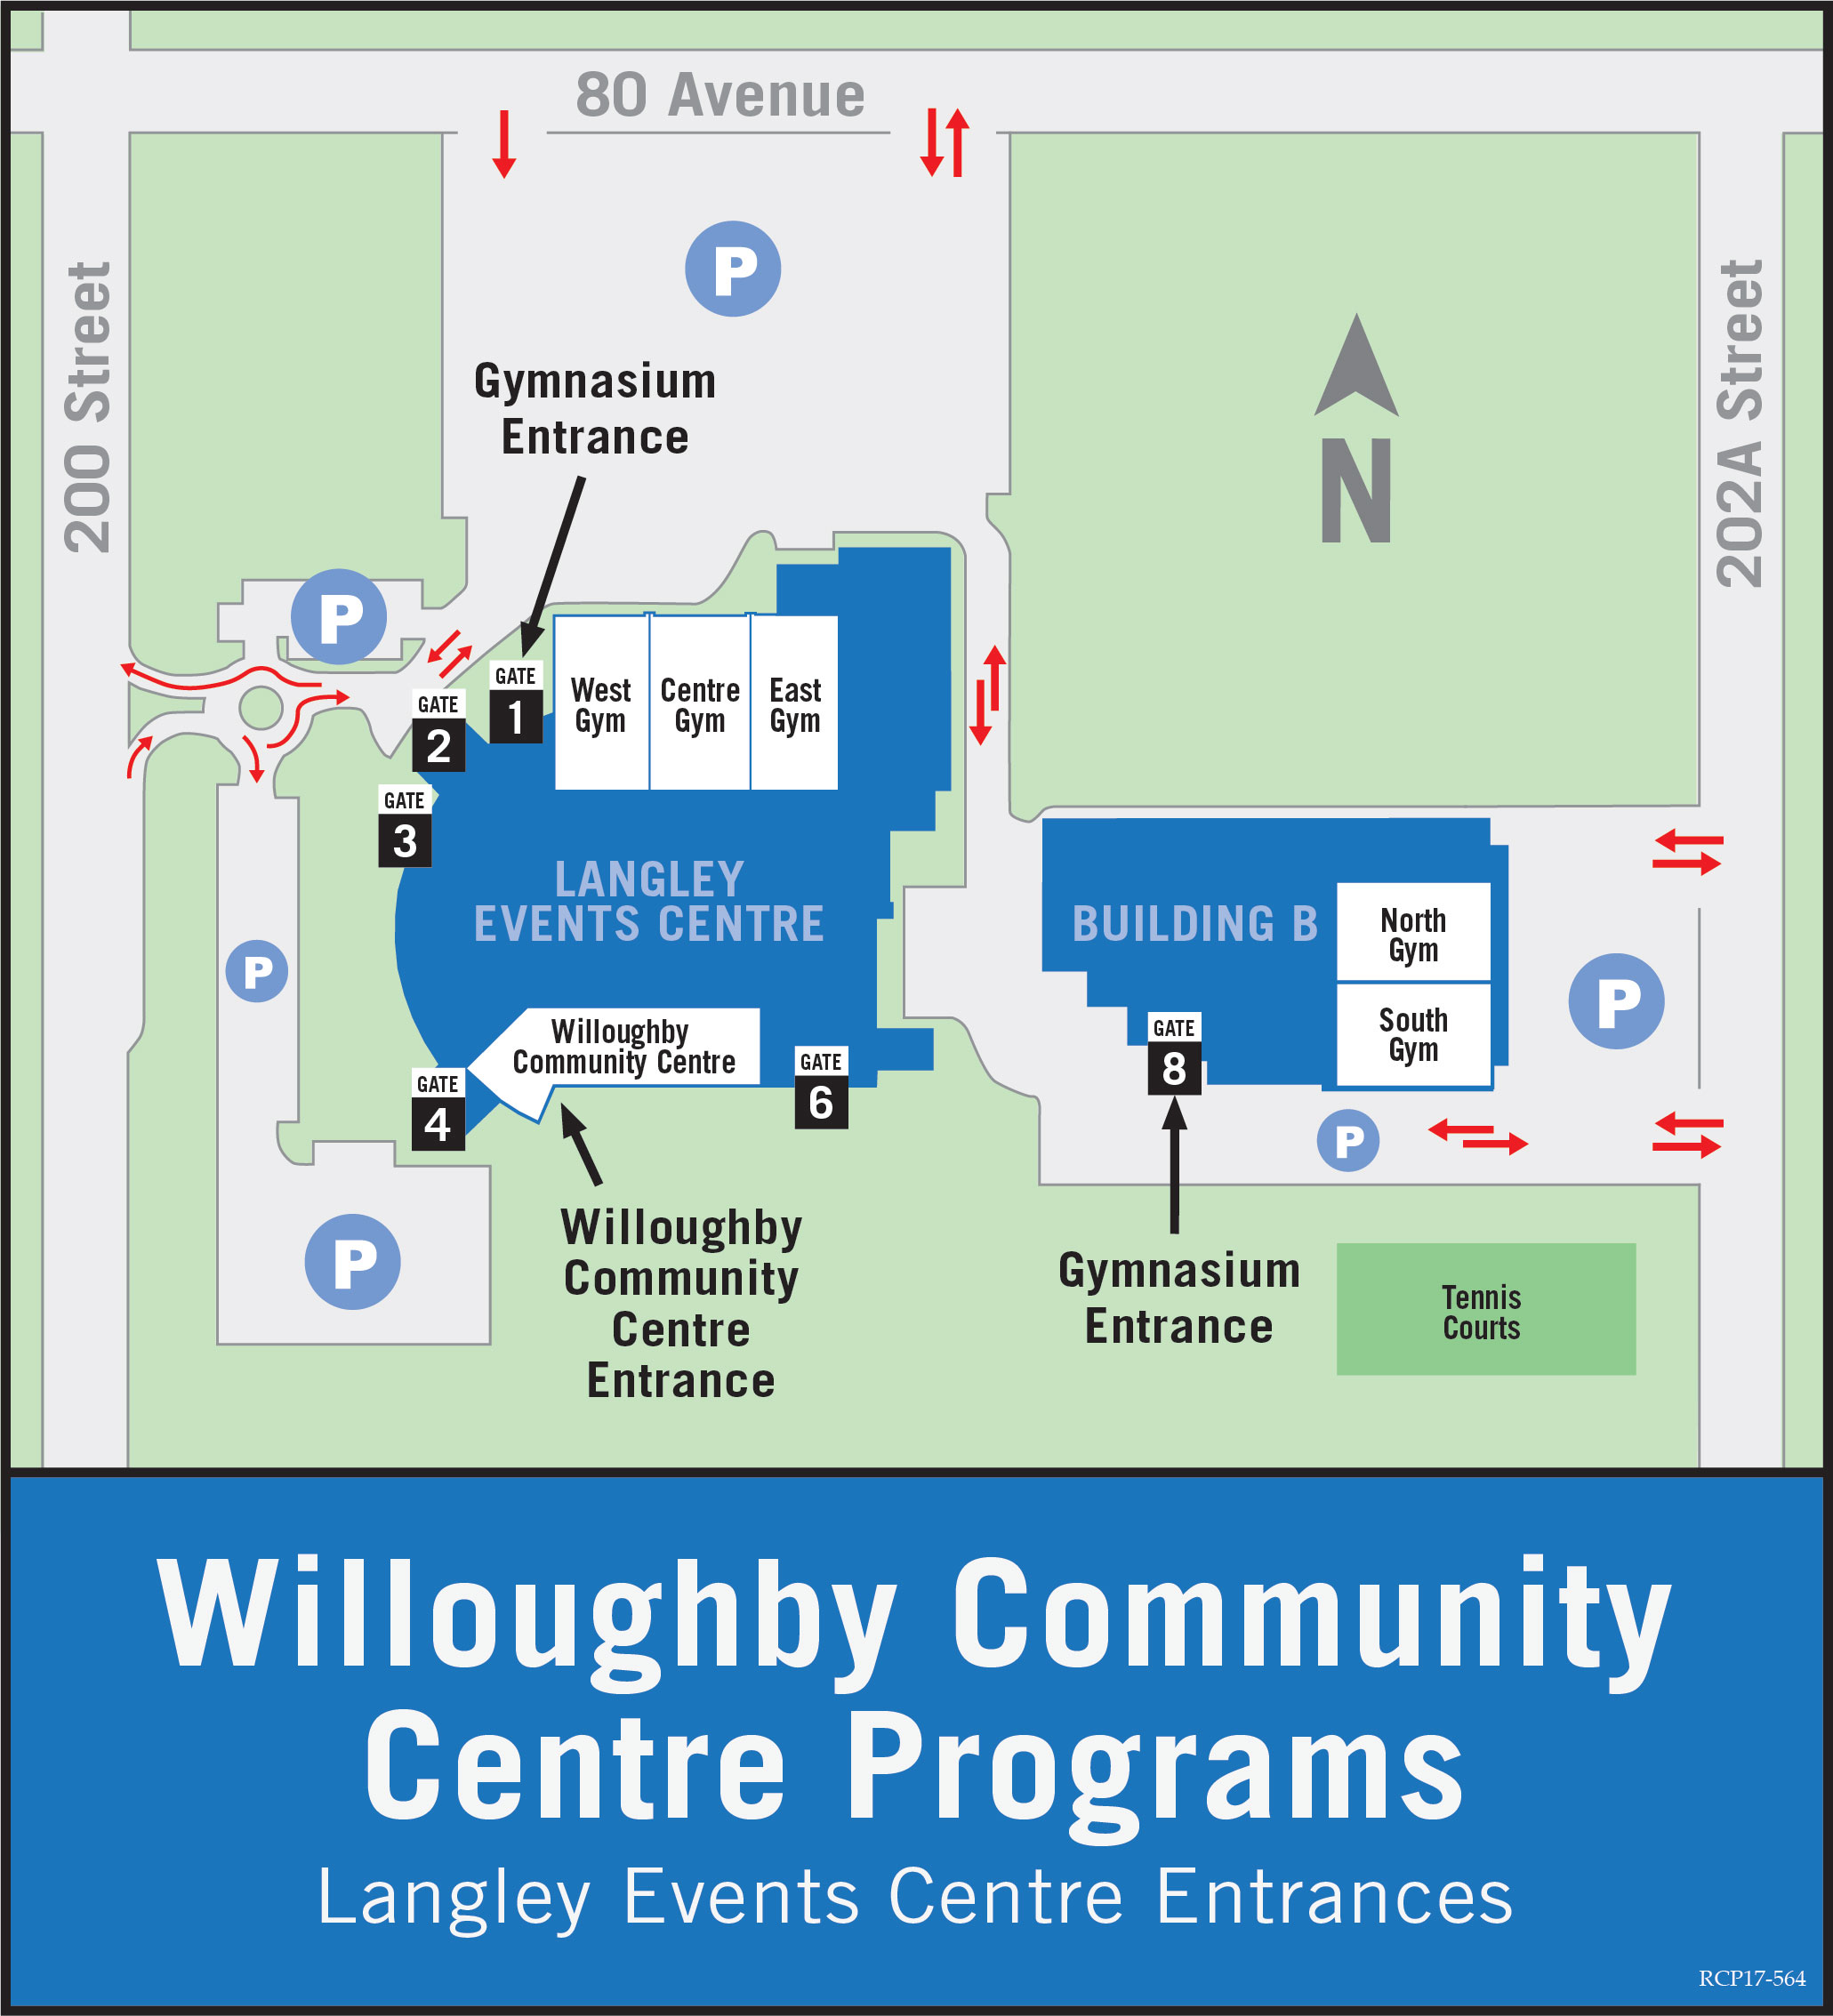 Willoughby Community Centre